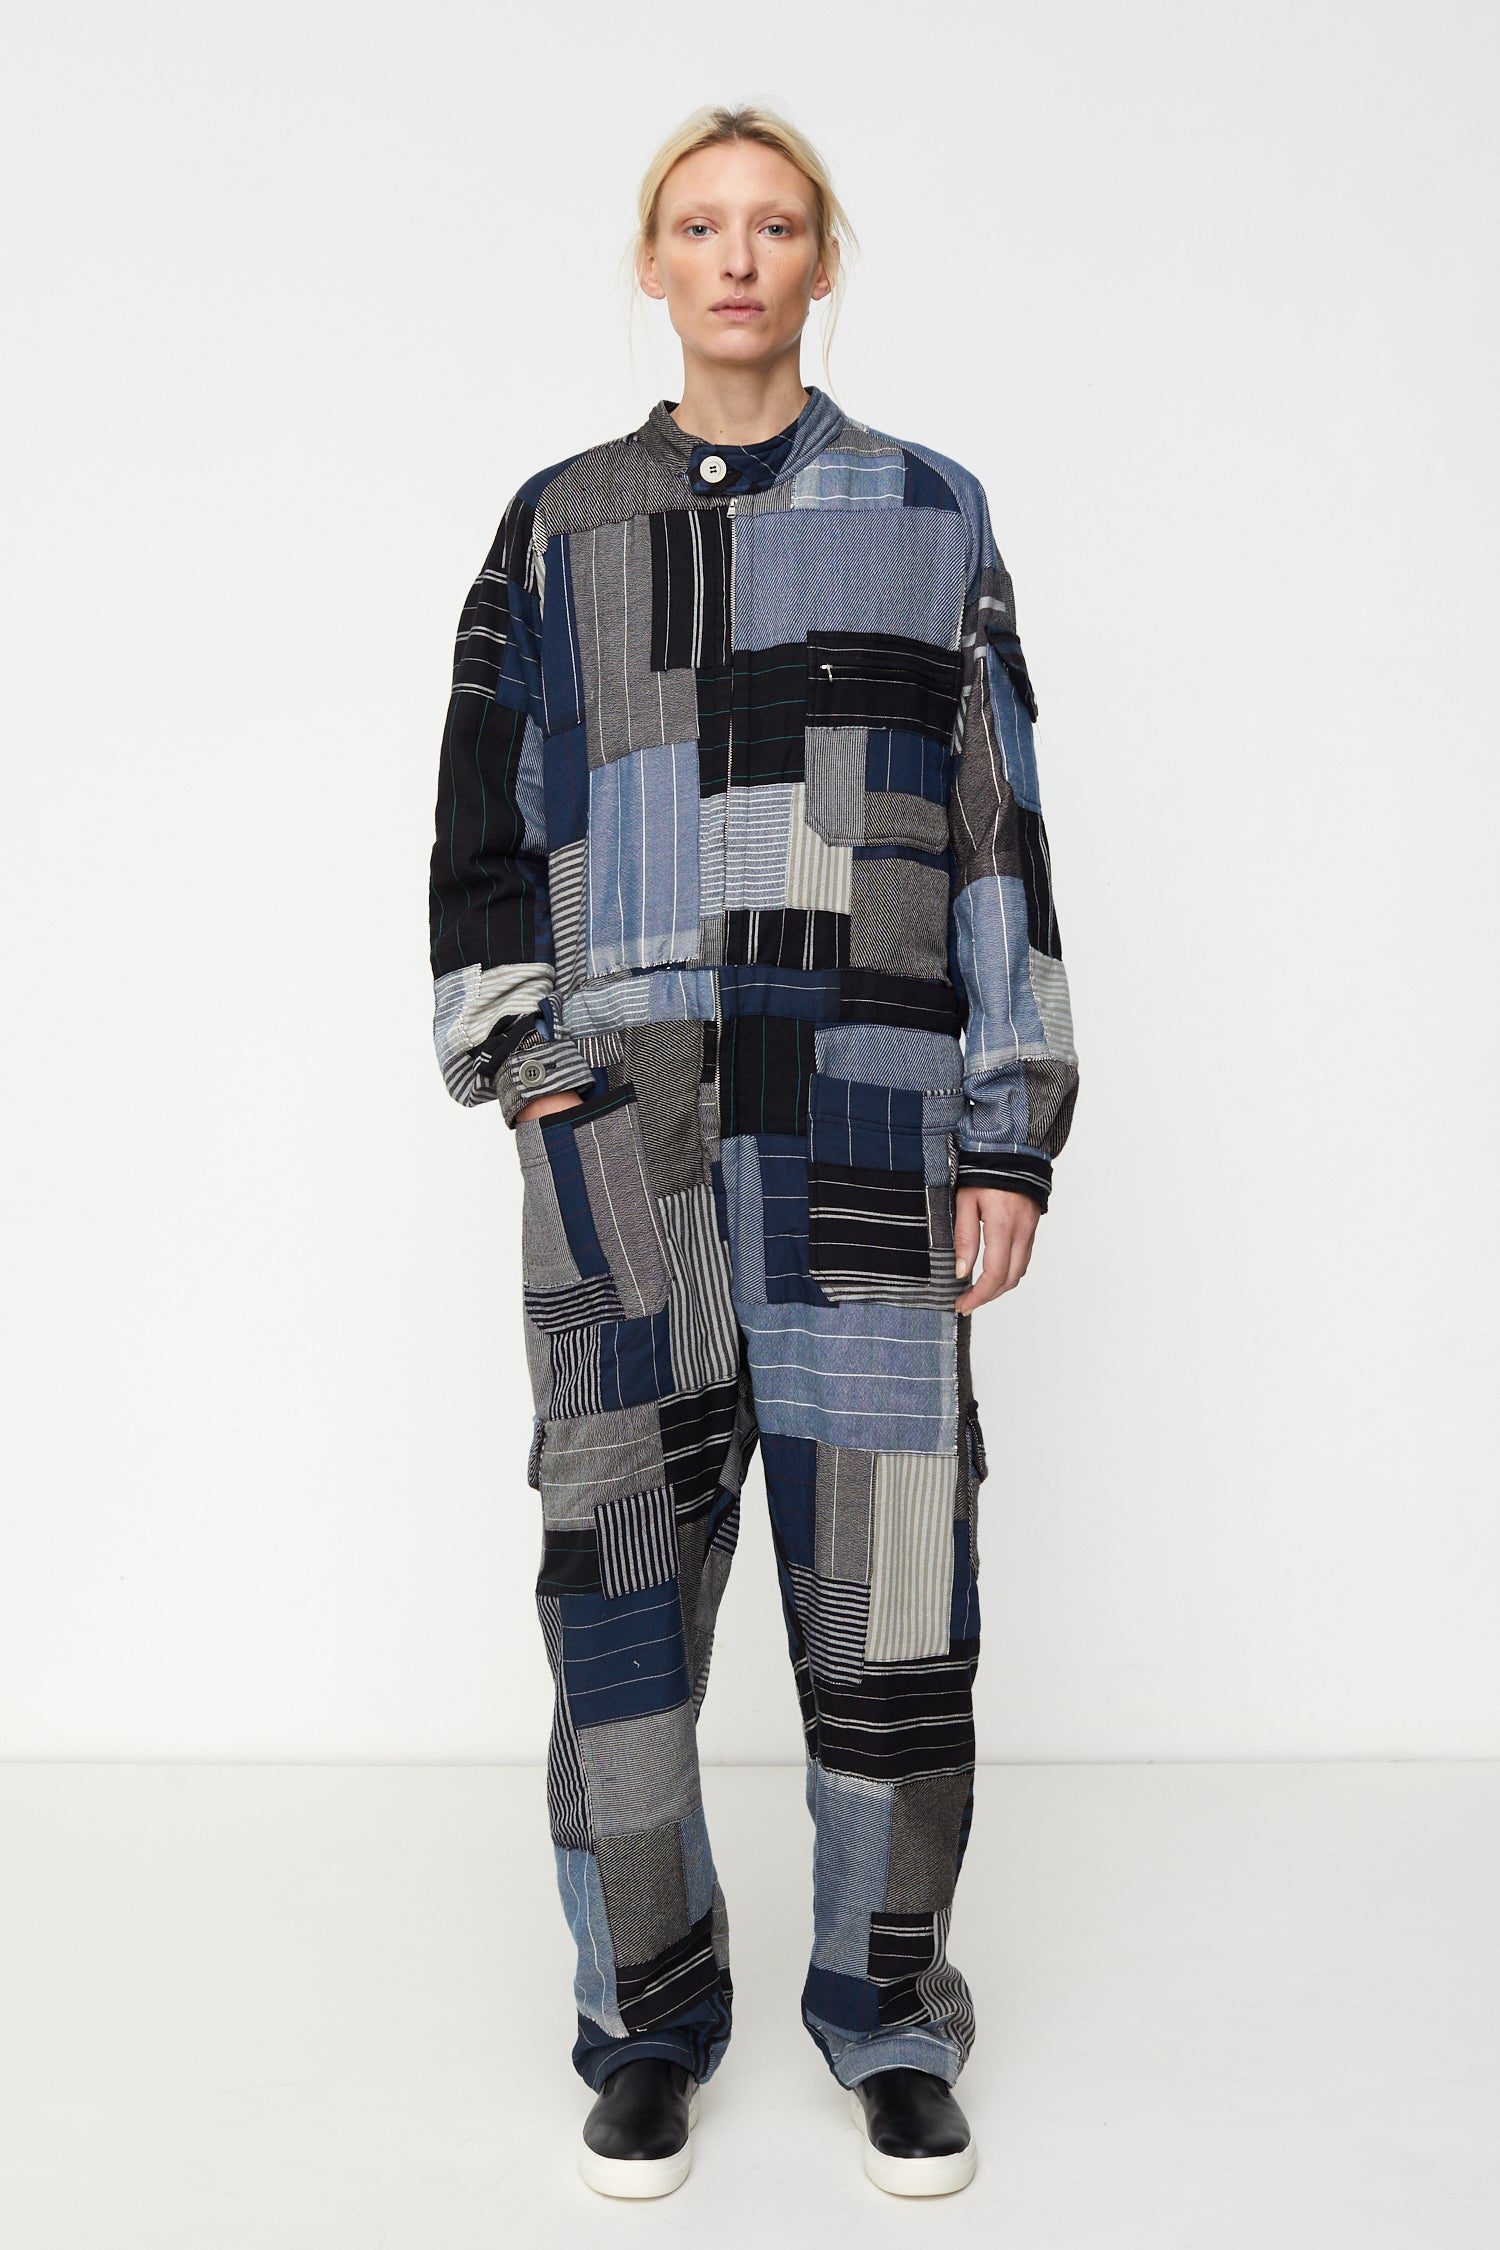 Patchwork Boiler Suit Blue / Gray / Black